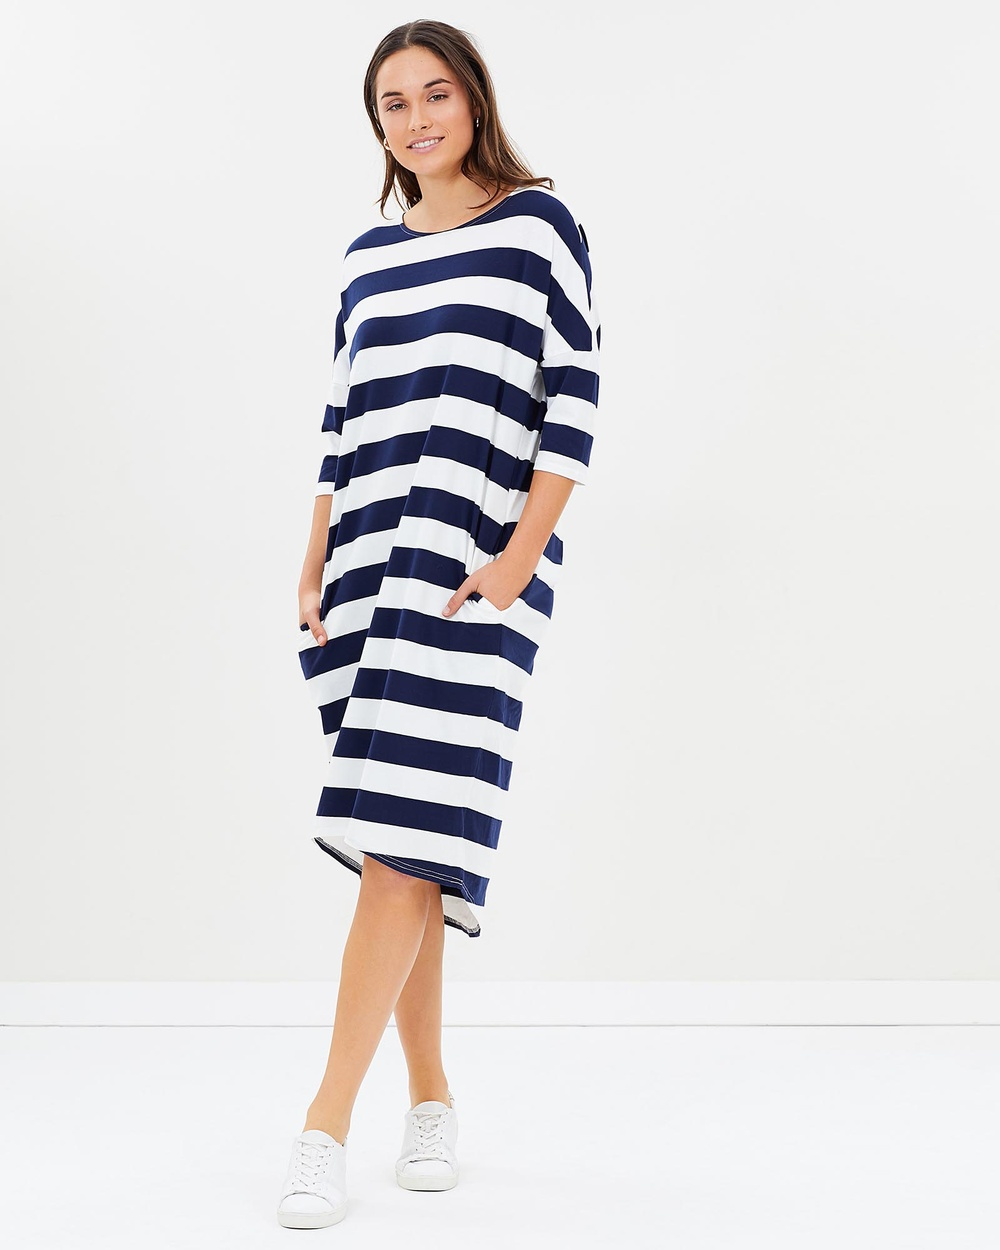 Lincoln St Cocoon Dress Dresses Navy Stripes Cocoon Dress